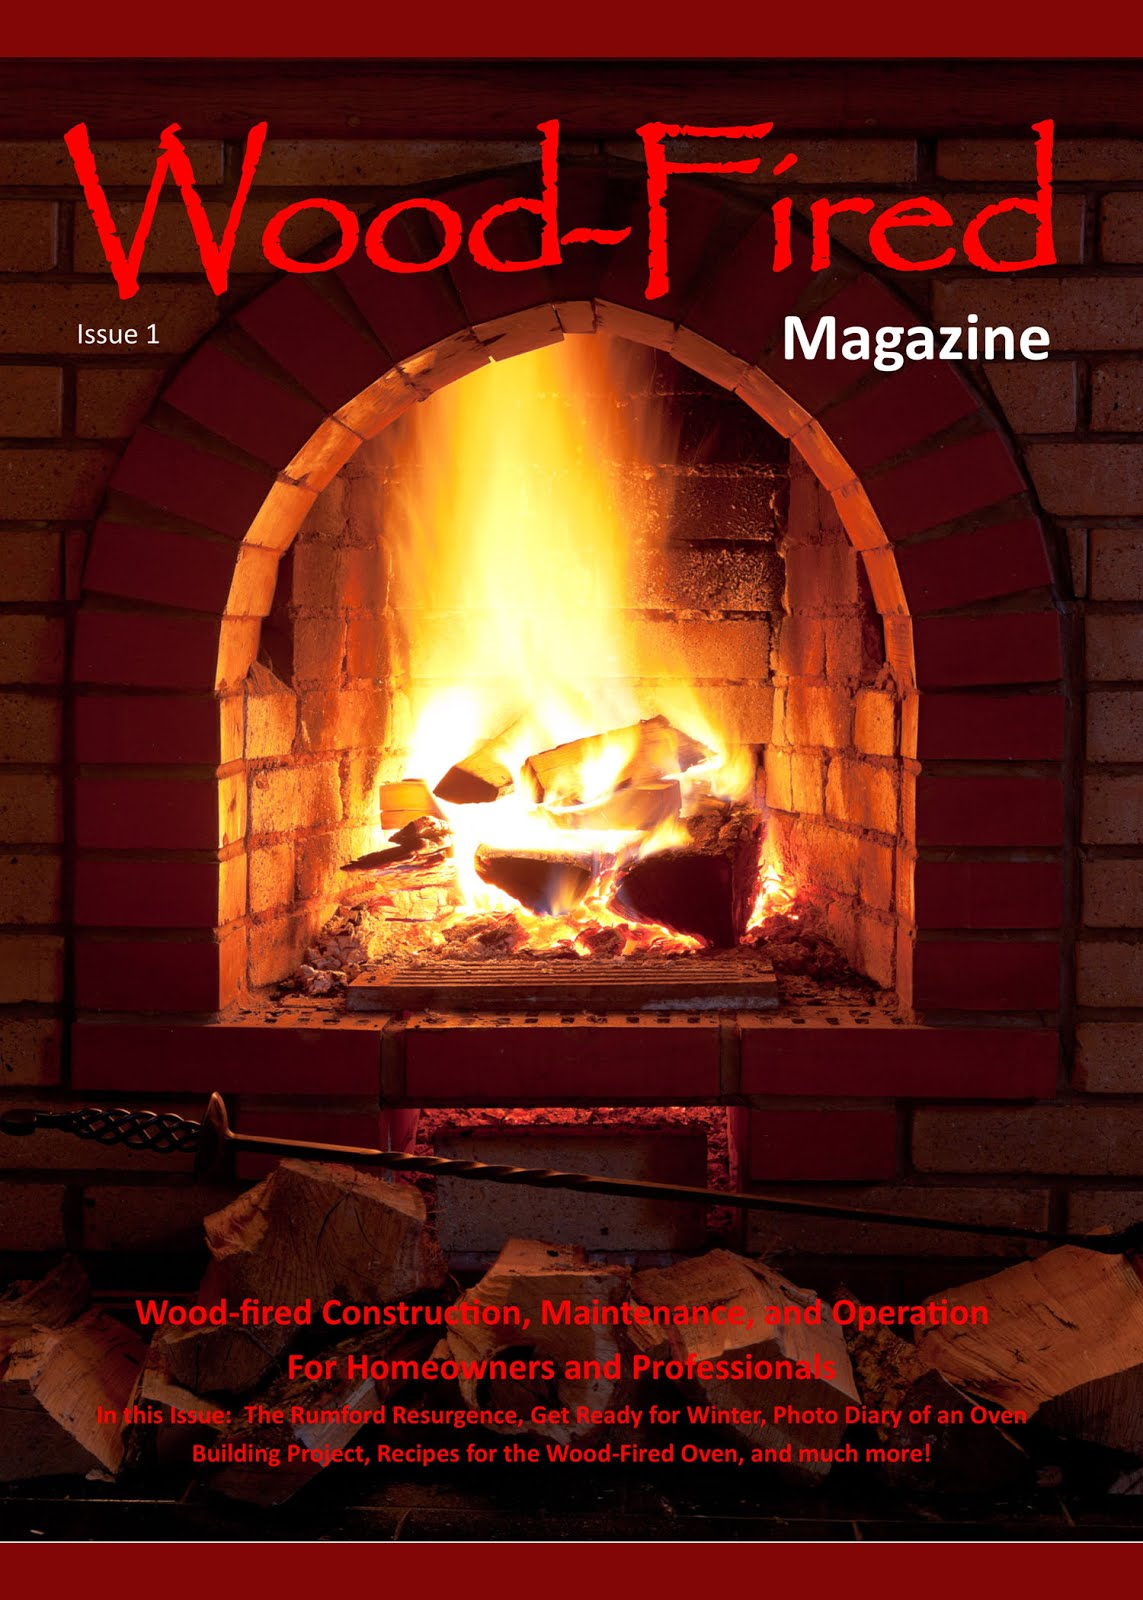 Wood-Fired image